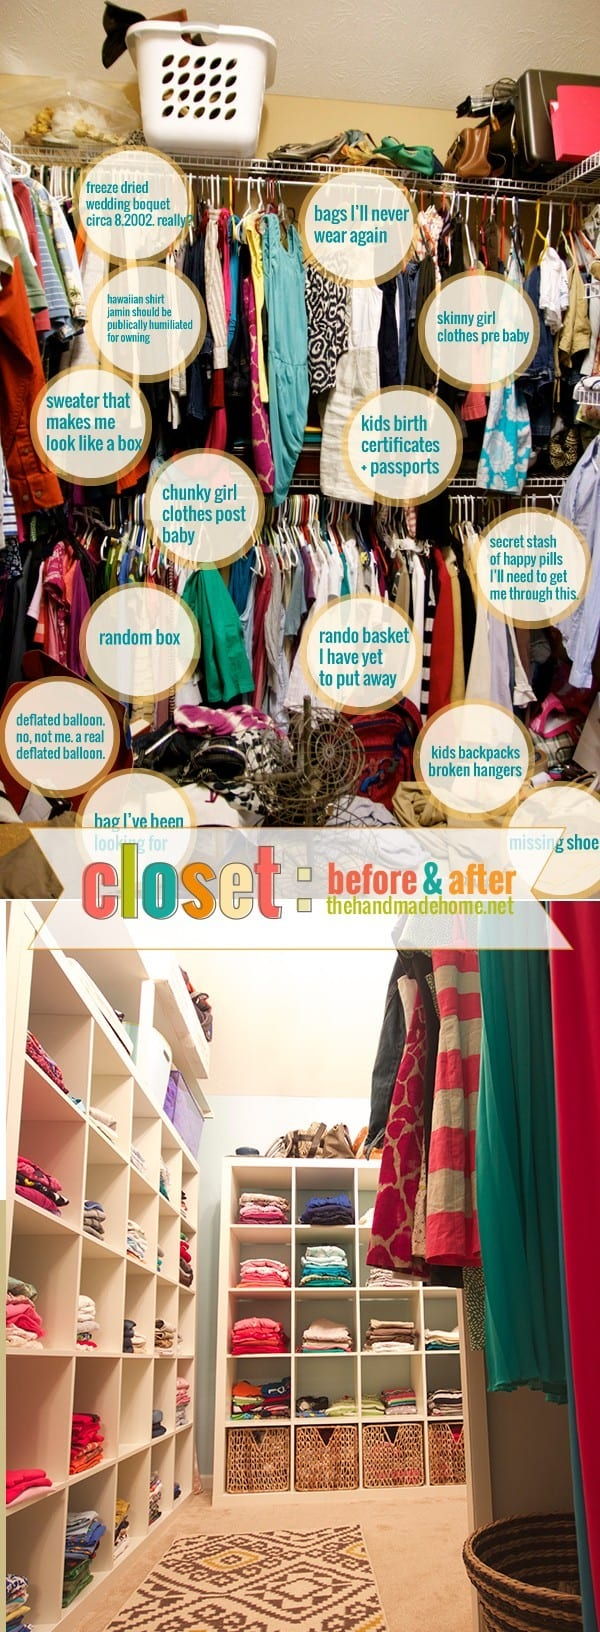 closet_before_and_after